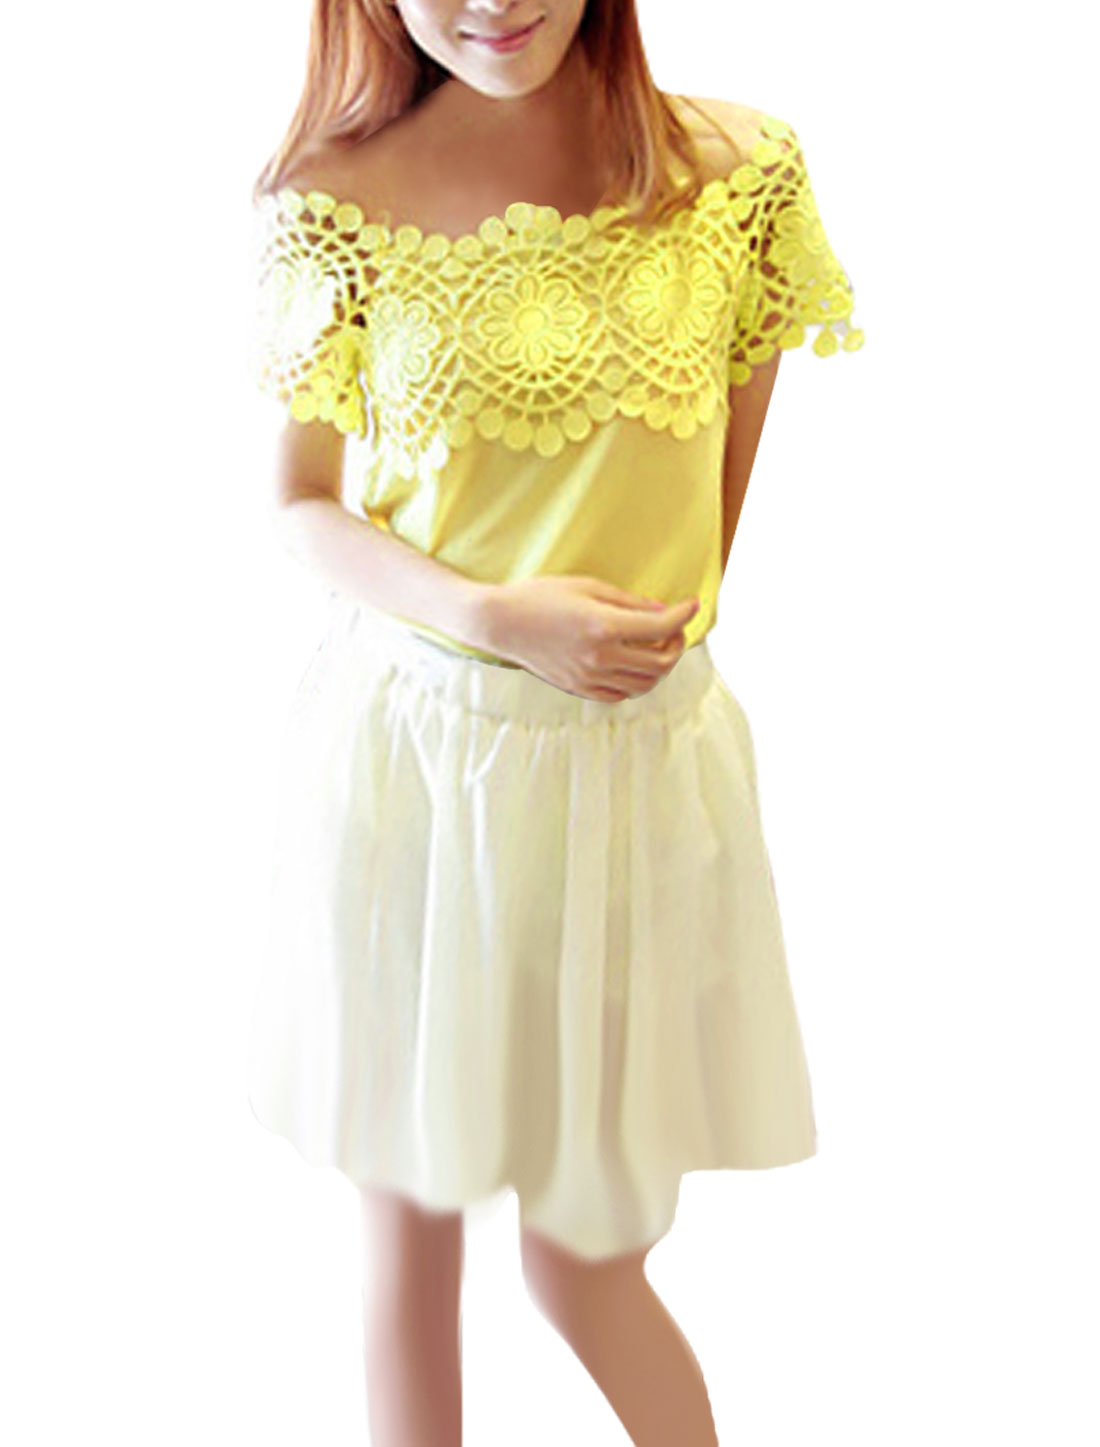 Women Chiffon Short Sleeve Crochet Spliced Shirt Fluorescent Yellow S